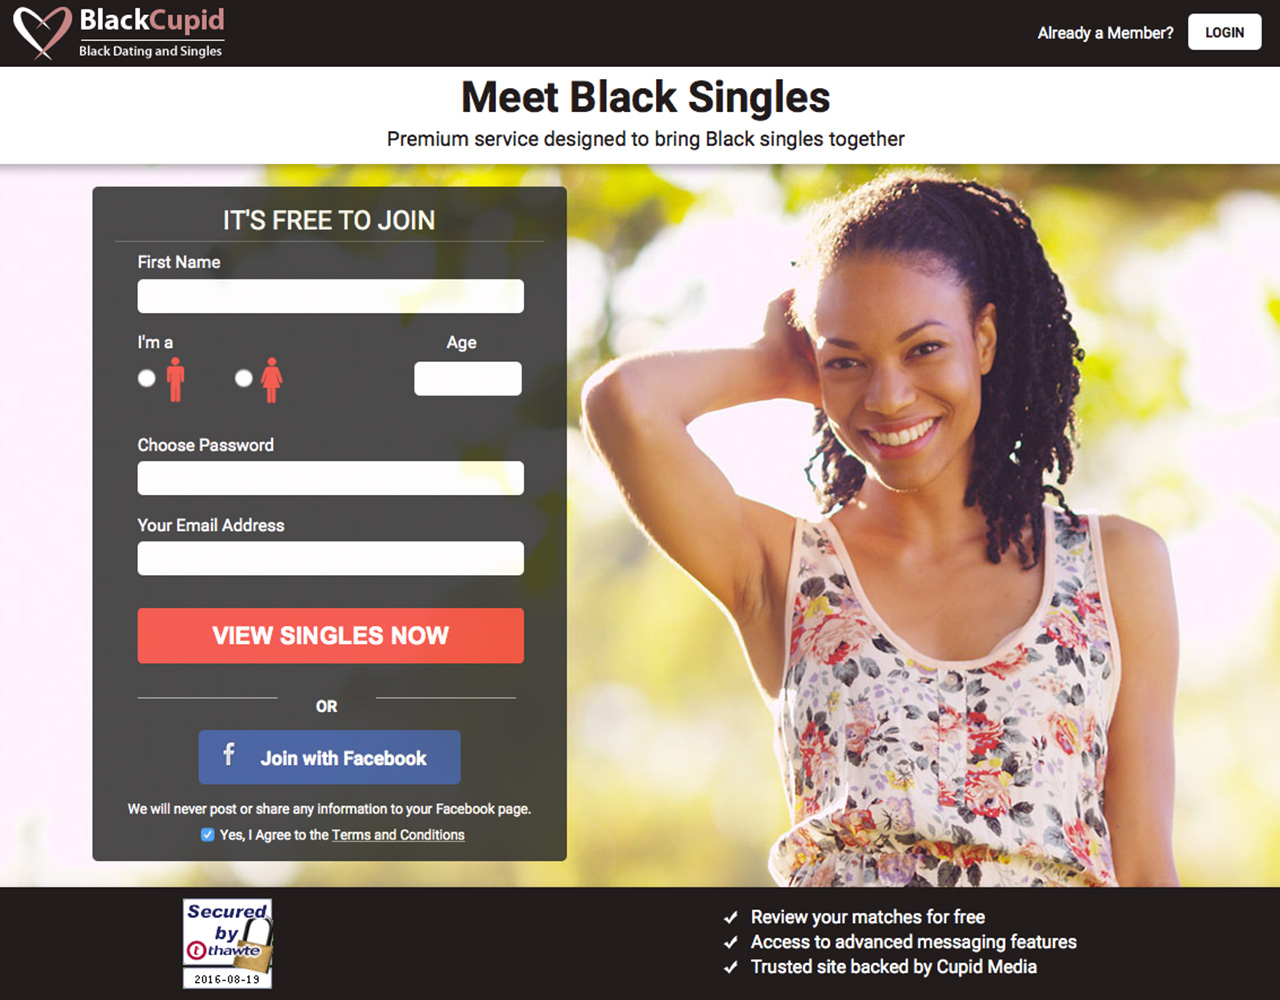 Dating sites: BlackCupid